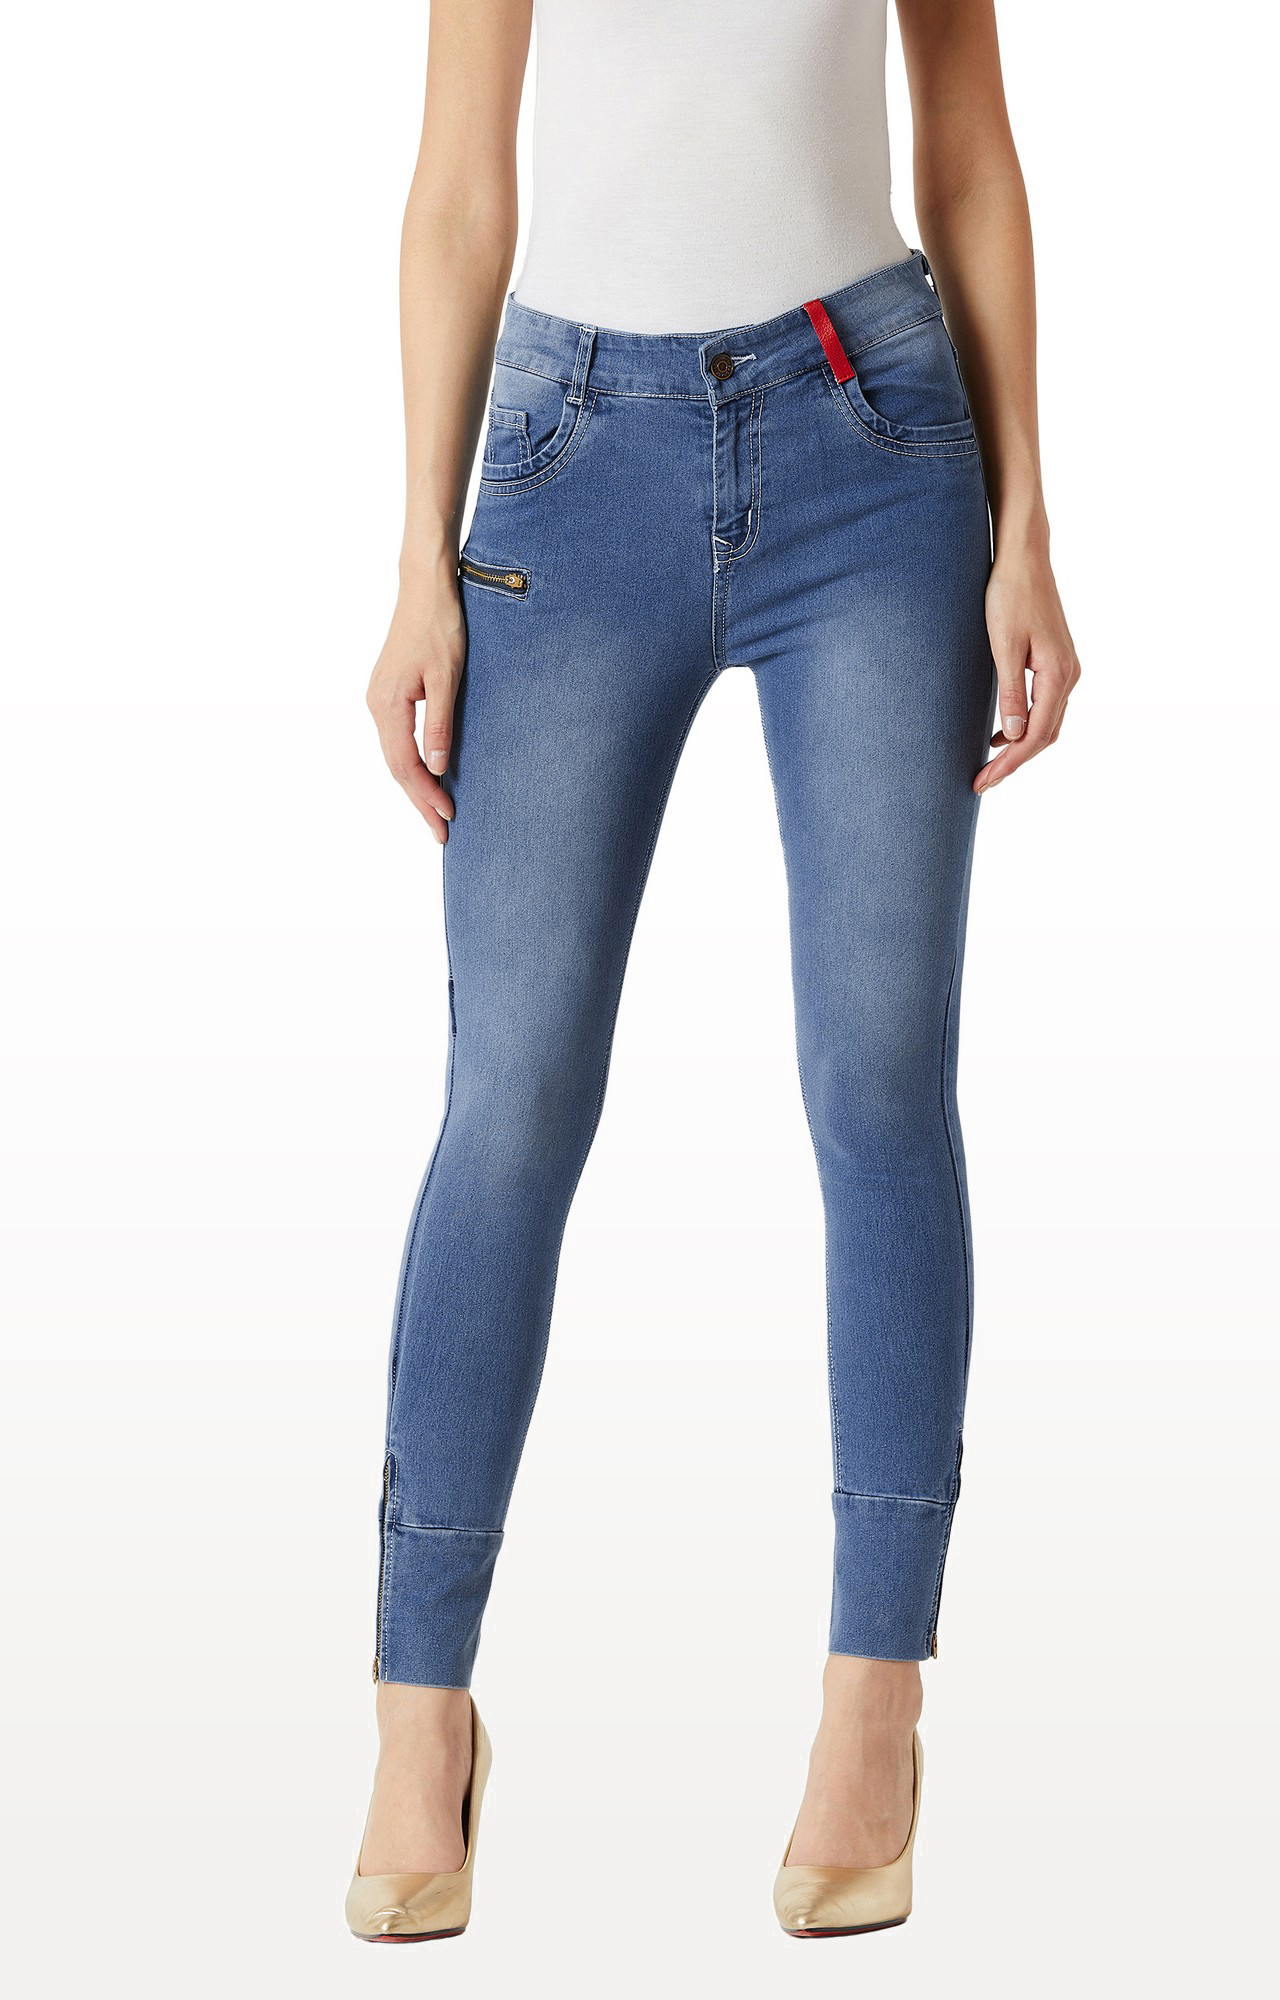 MISS CHASE   Blue Solid Mid Rise Zip and Loop Detailing Jeans